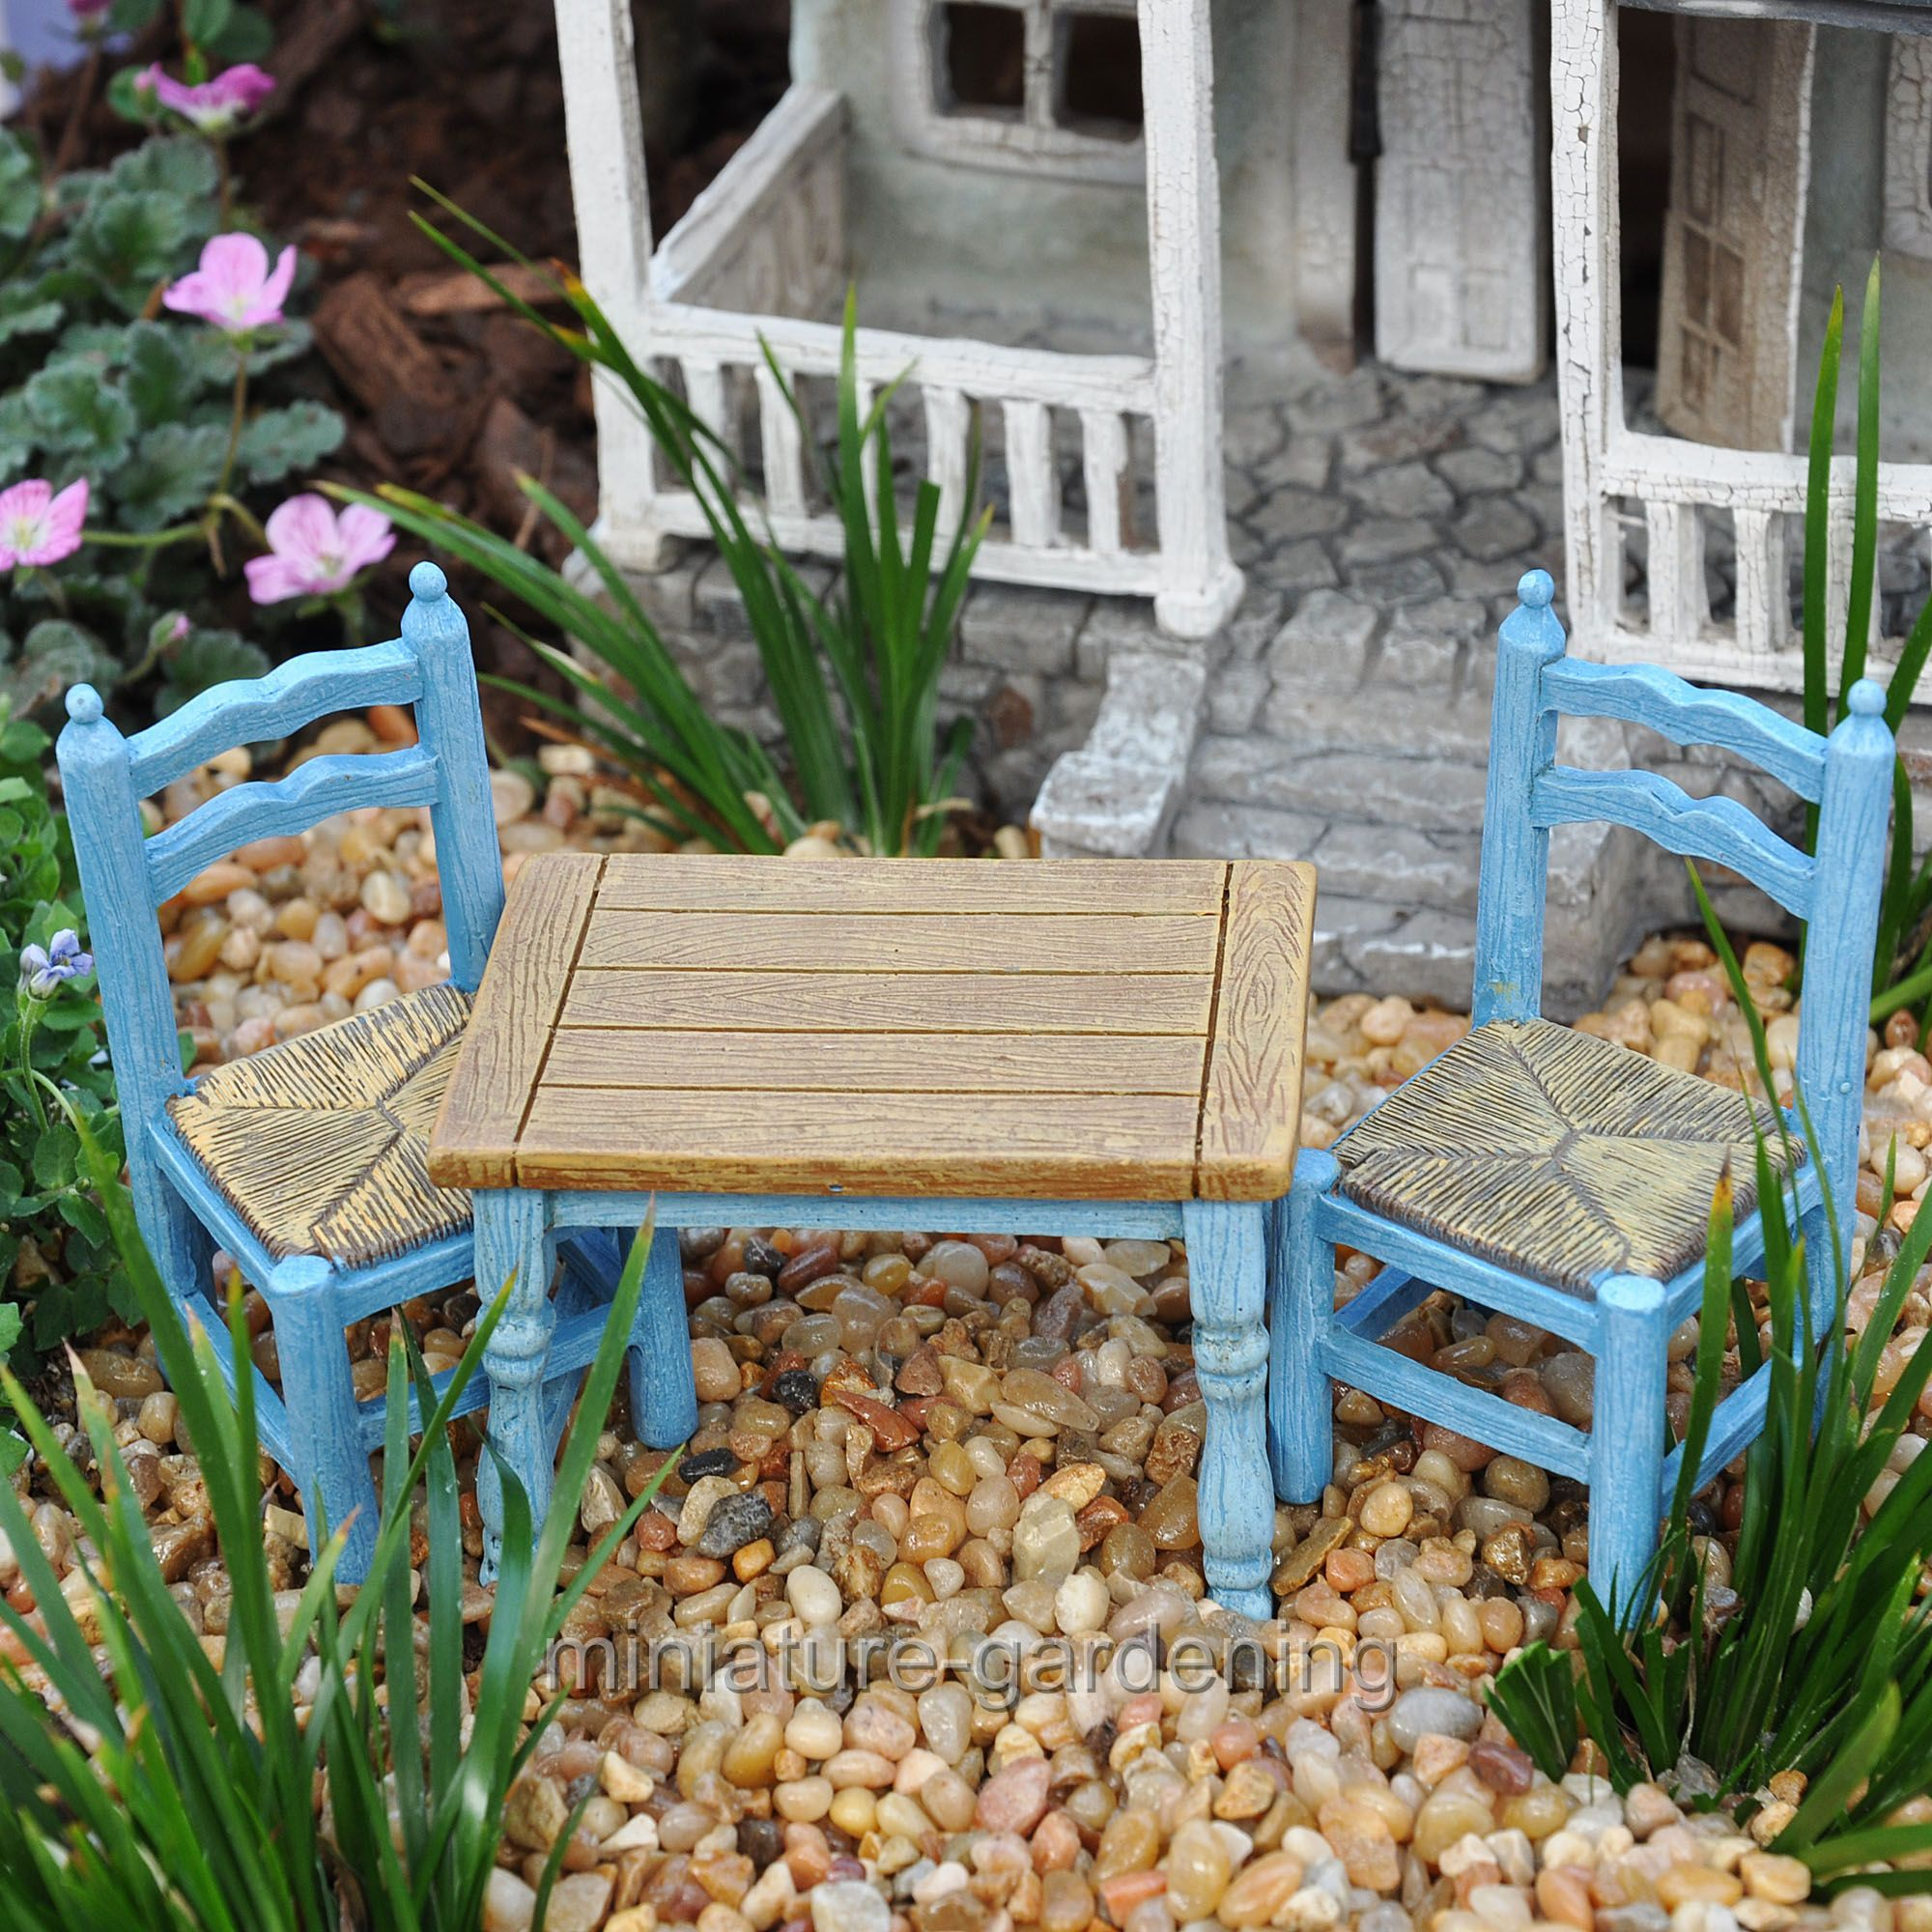 Studio-M Farm Table and Chairs, 3 Piece Set for Miniature Garden, Fairy Garden